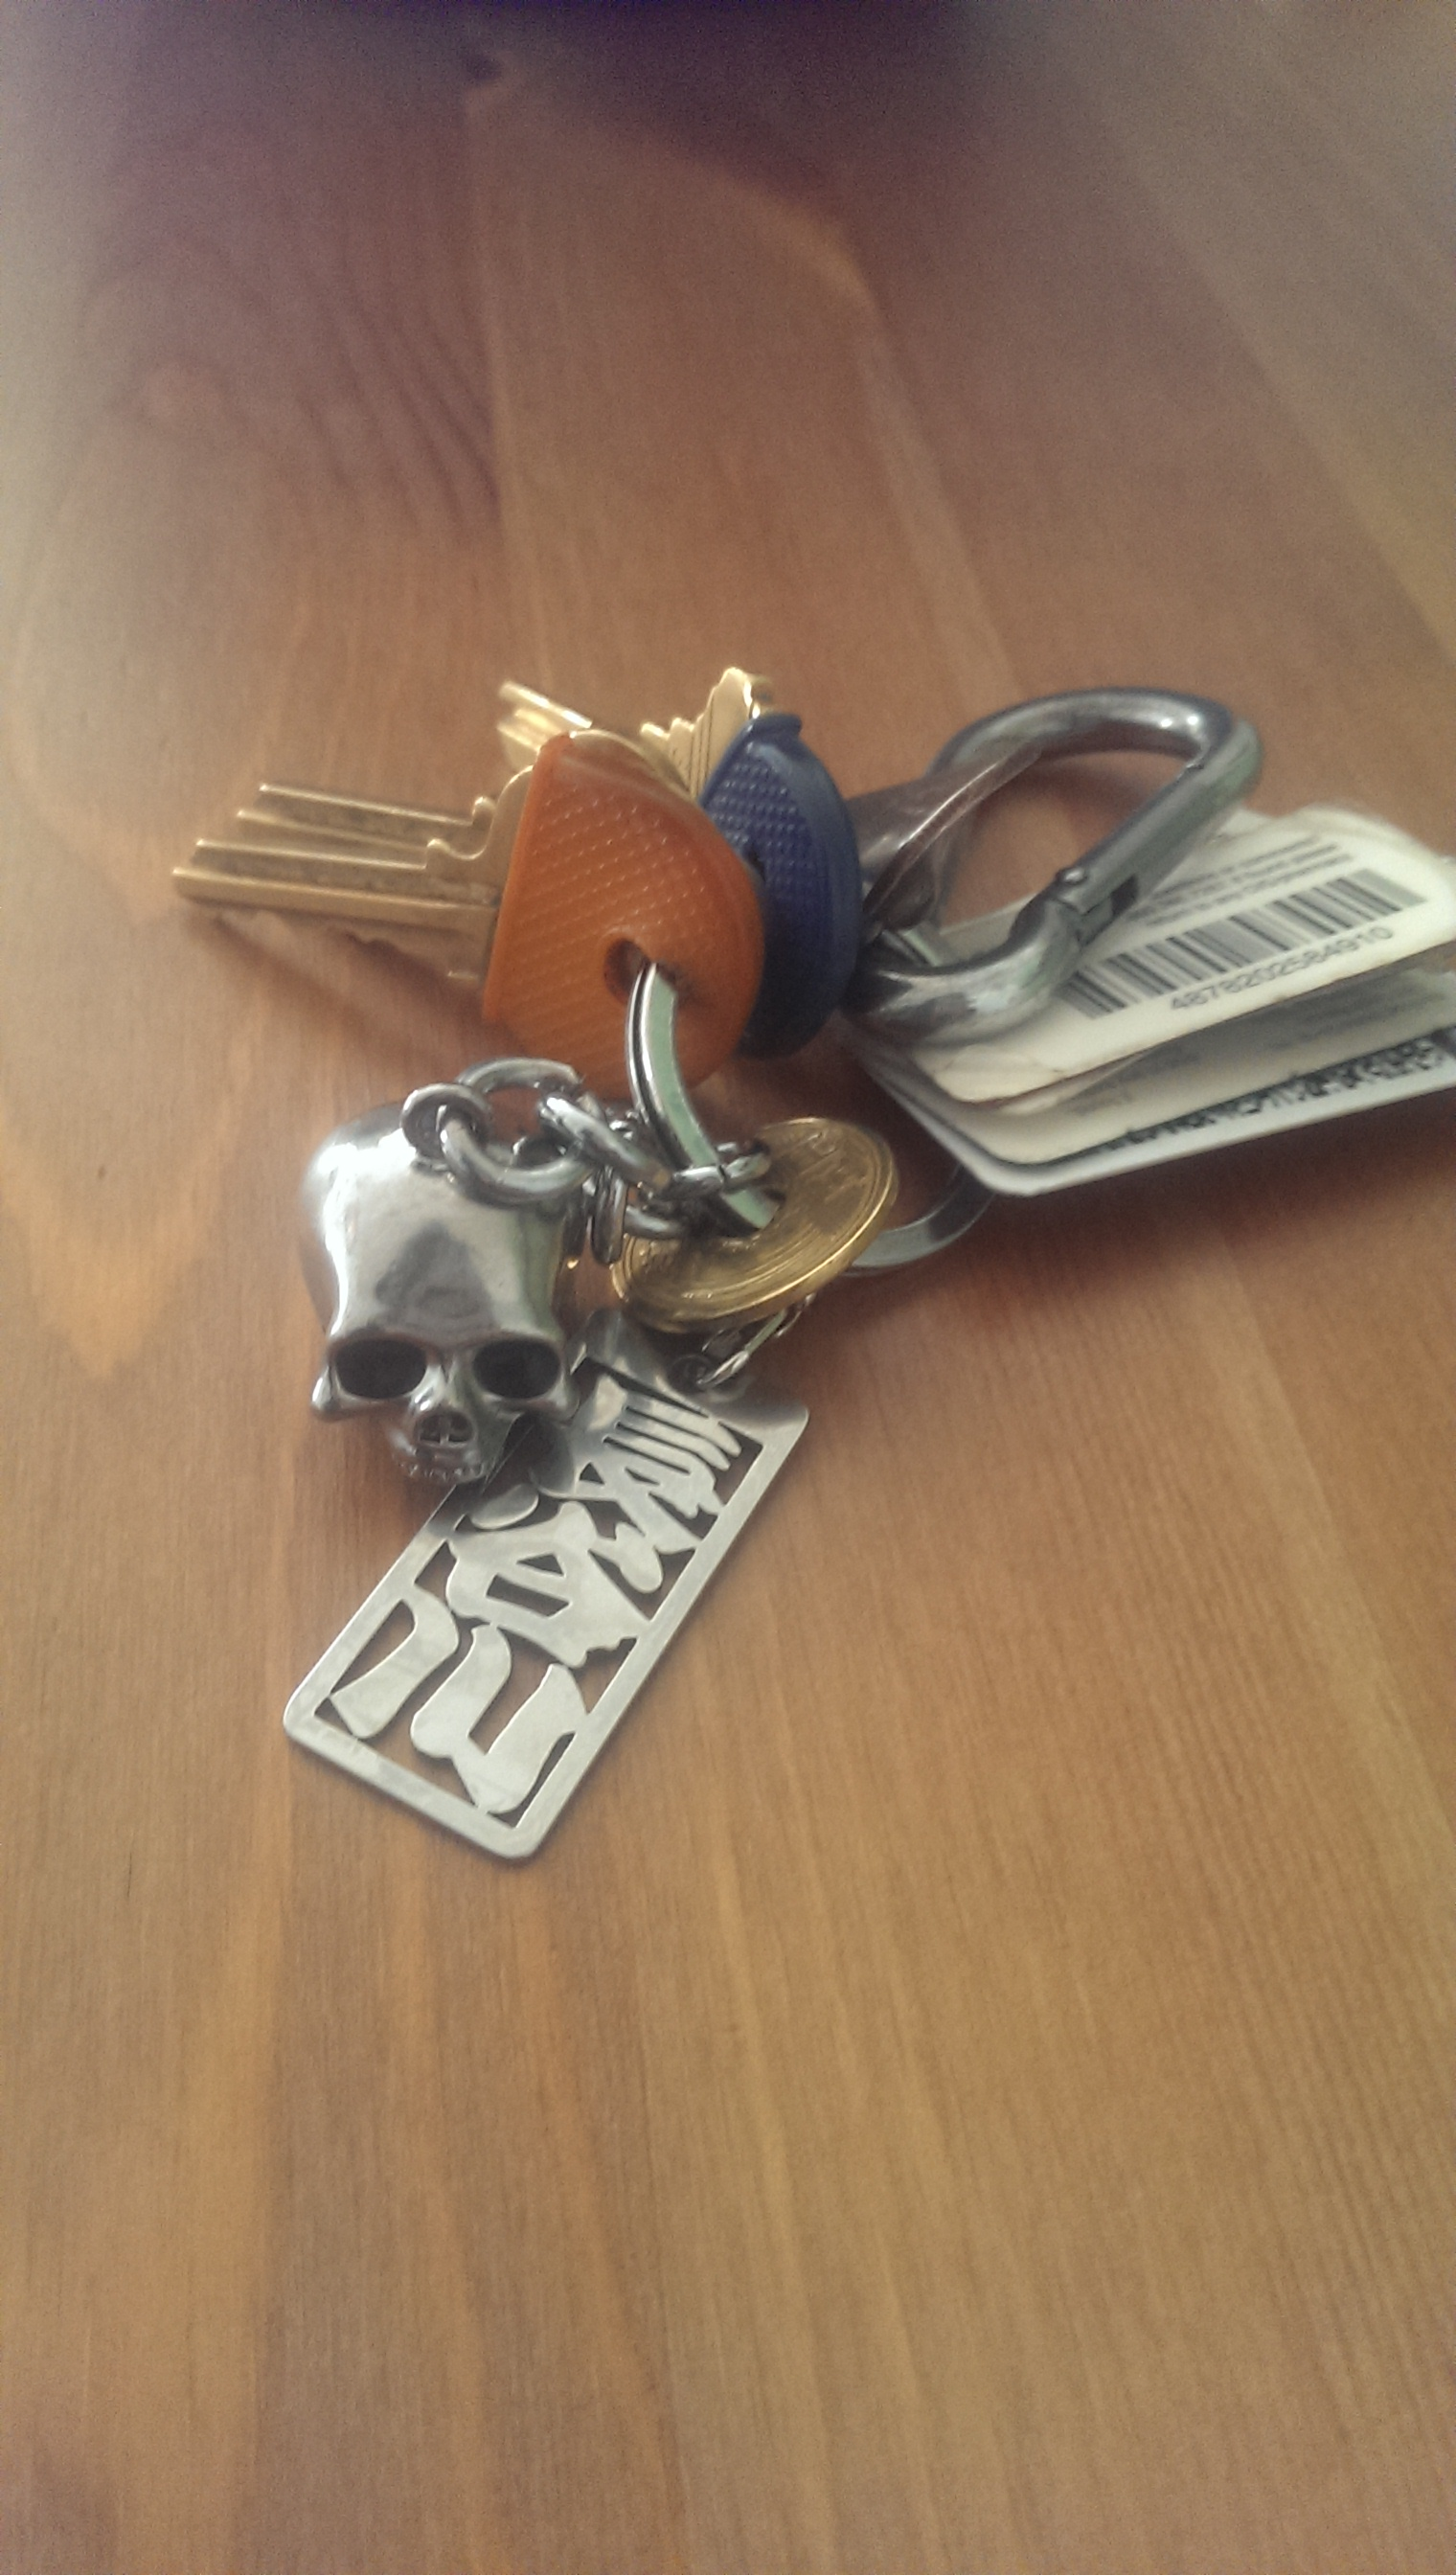 Keys, I surround my house keys with a skull keychain from my art professor, a japanese 5yen piece for good luck and my family name.